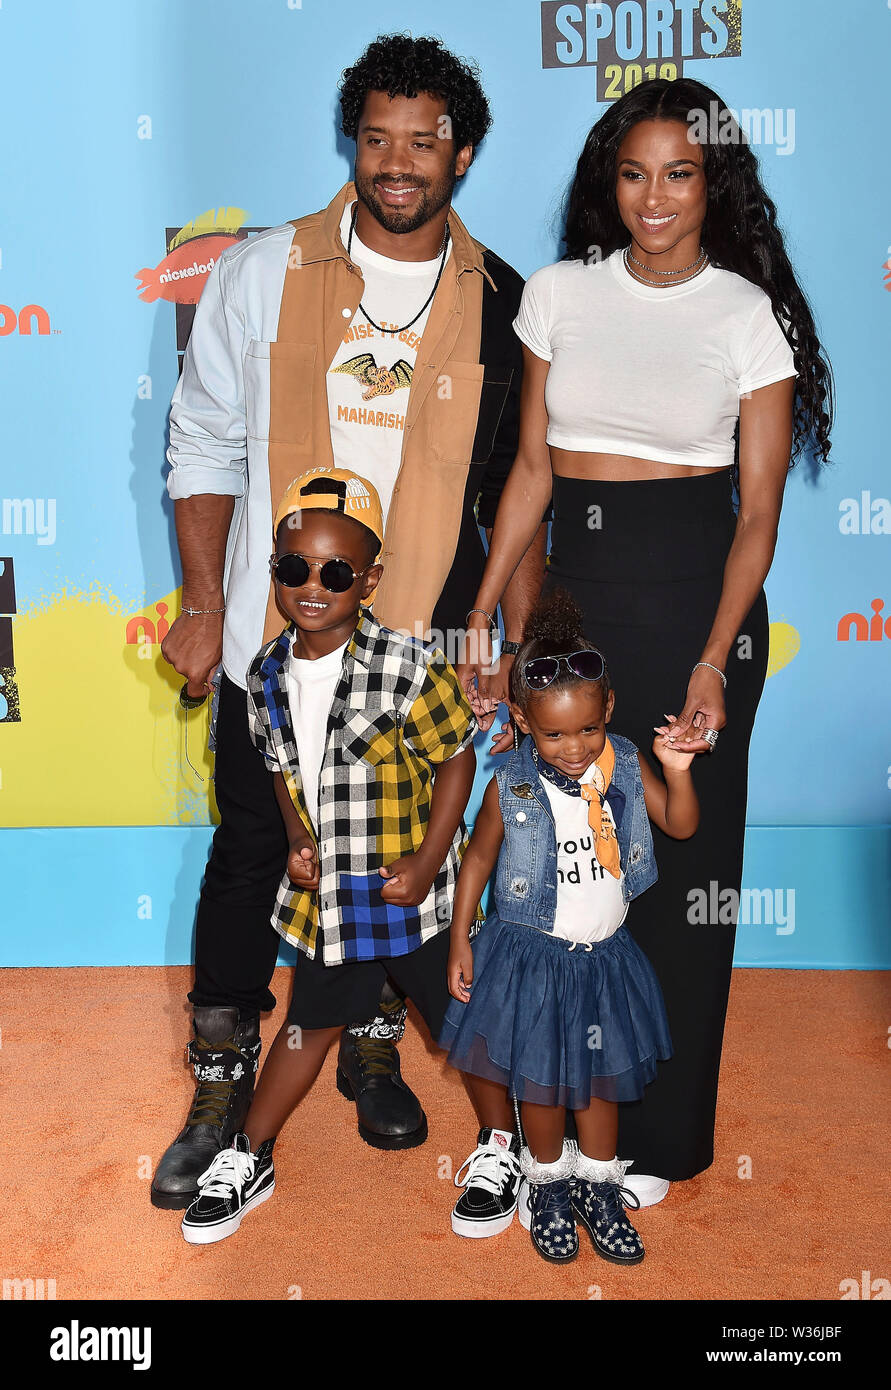 Santa Monica Ca July 11 L R Russell Wilson Ciara Future Zahir Wilburn And Sienna Princess Wilson The artist also shares a daughter with the nfl player. https www alamy com santa monica ca july 11 l r russell wilson ciara future zahir wilburn and sienna princess wilson attend nickelodeon kids choice sports 2019 at barker hangar on july 11 2019 in santa monica california image260145635 html